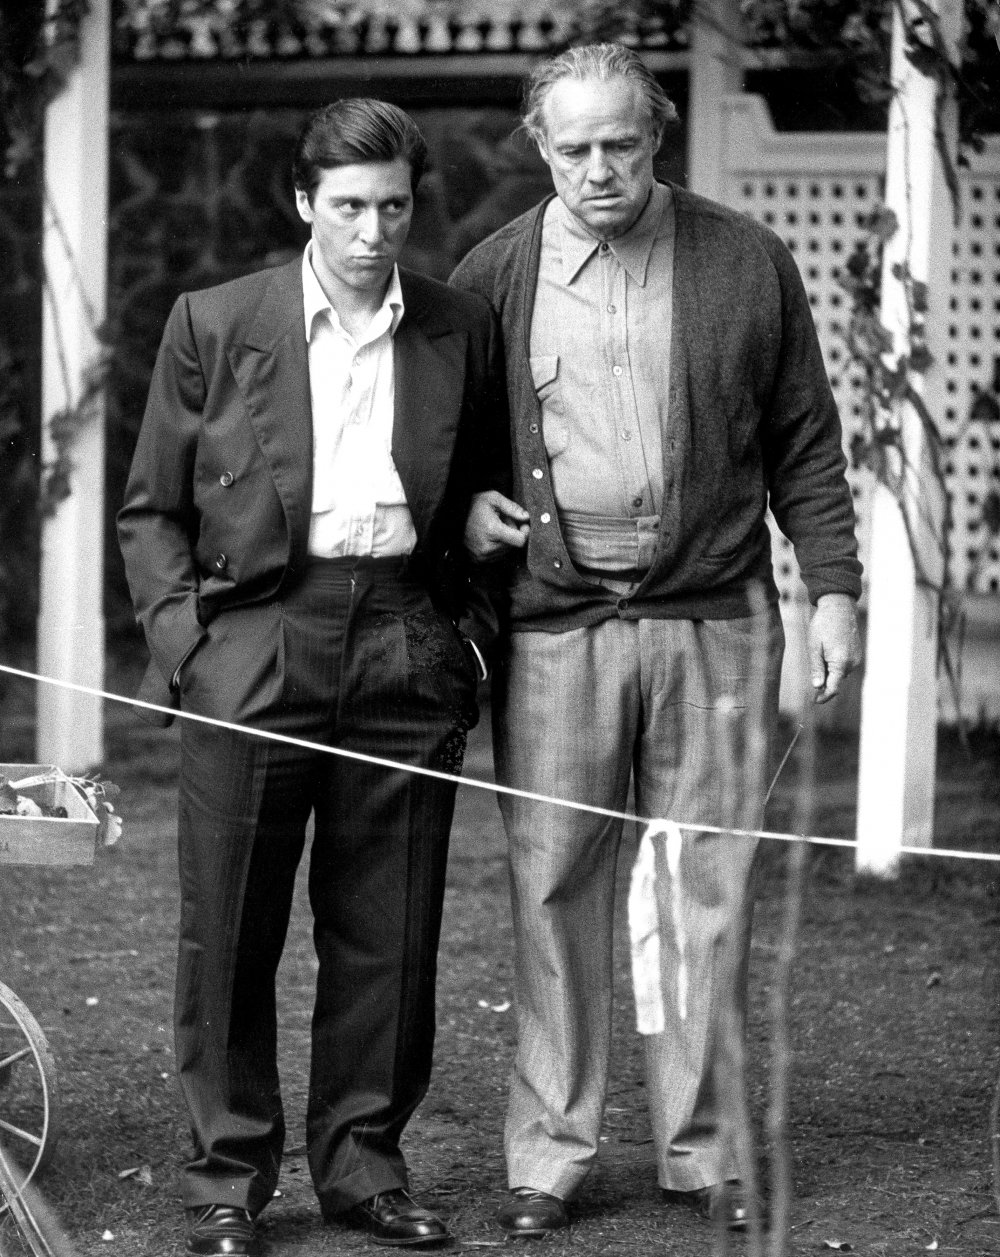 Pacino and Brando on location